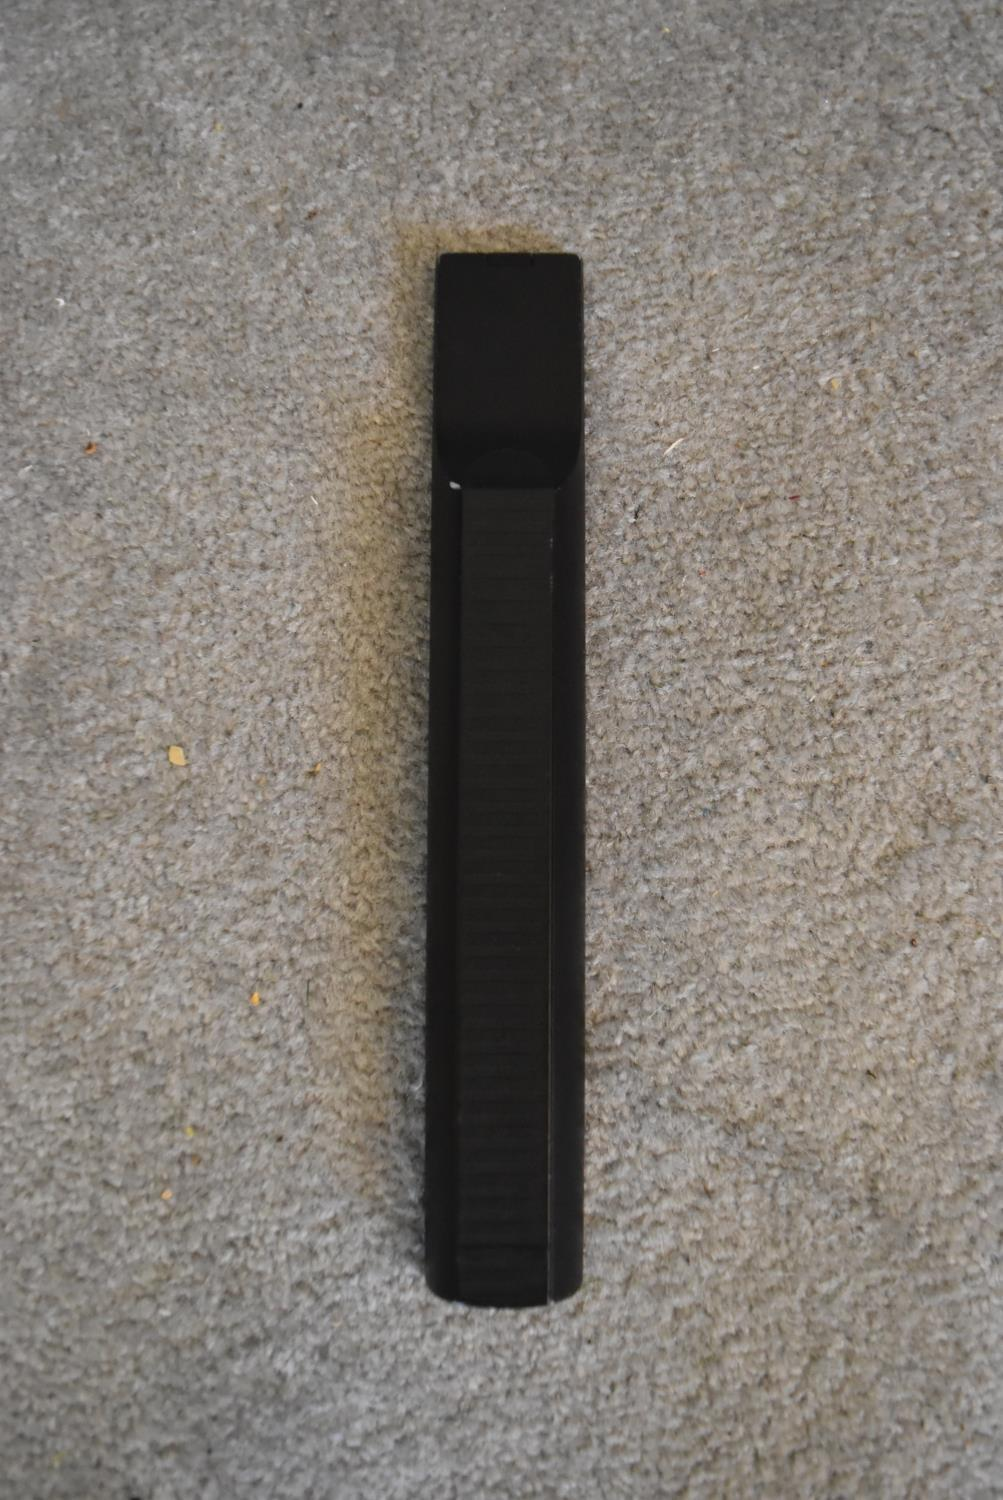 Lot 6 - A Bang & Olufsen Beo4 remote controller for BeoSound 9000 6-CD stack, BeoLab 1 speakers, BeoVision